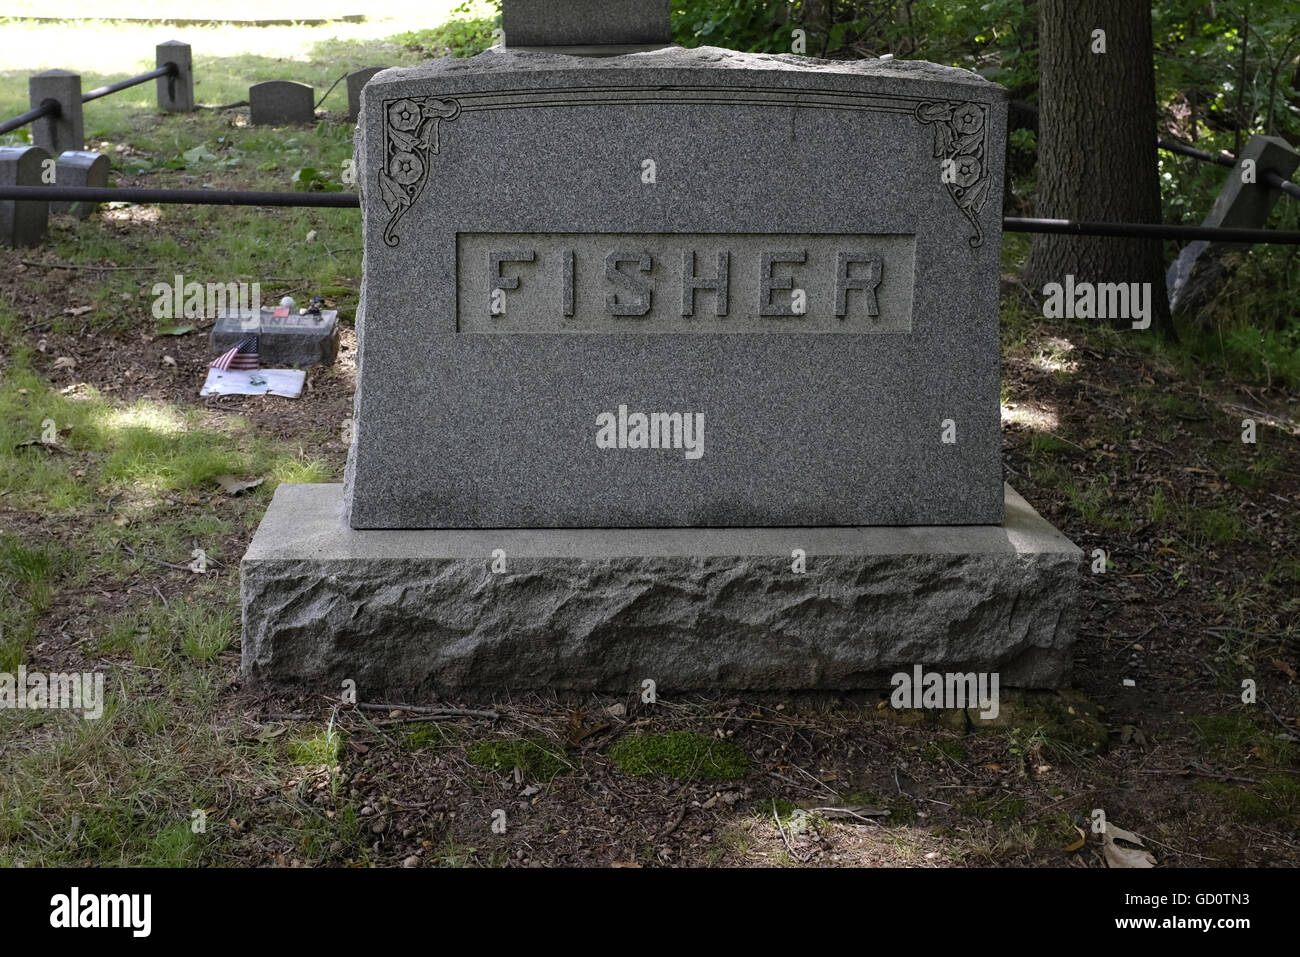 Grave of Stanley Fisher, killed in the New Jersey shore shark attacks of 1916 - Stock Image